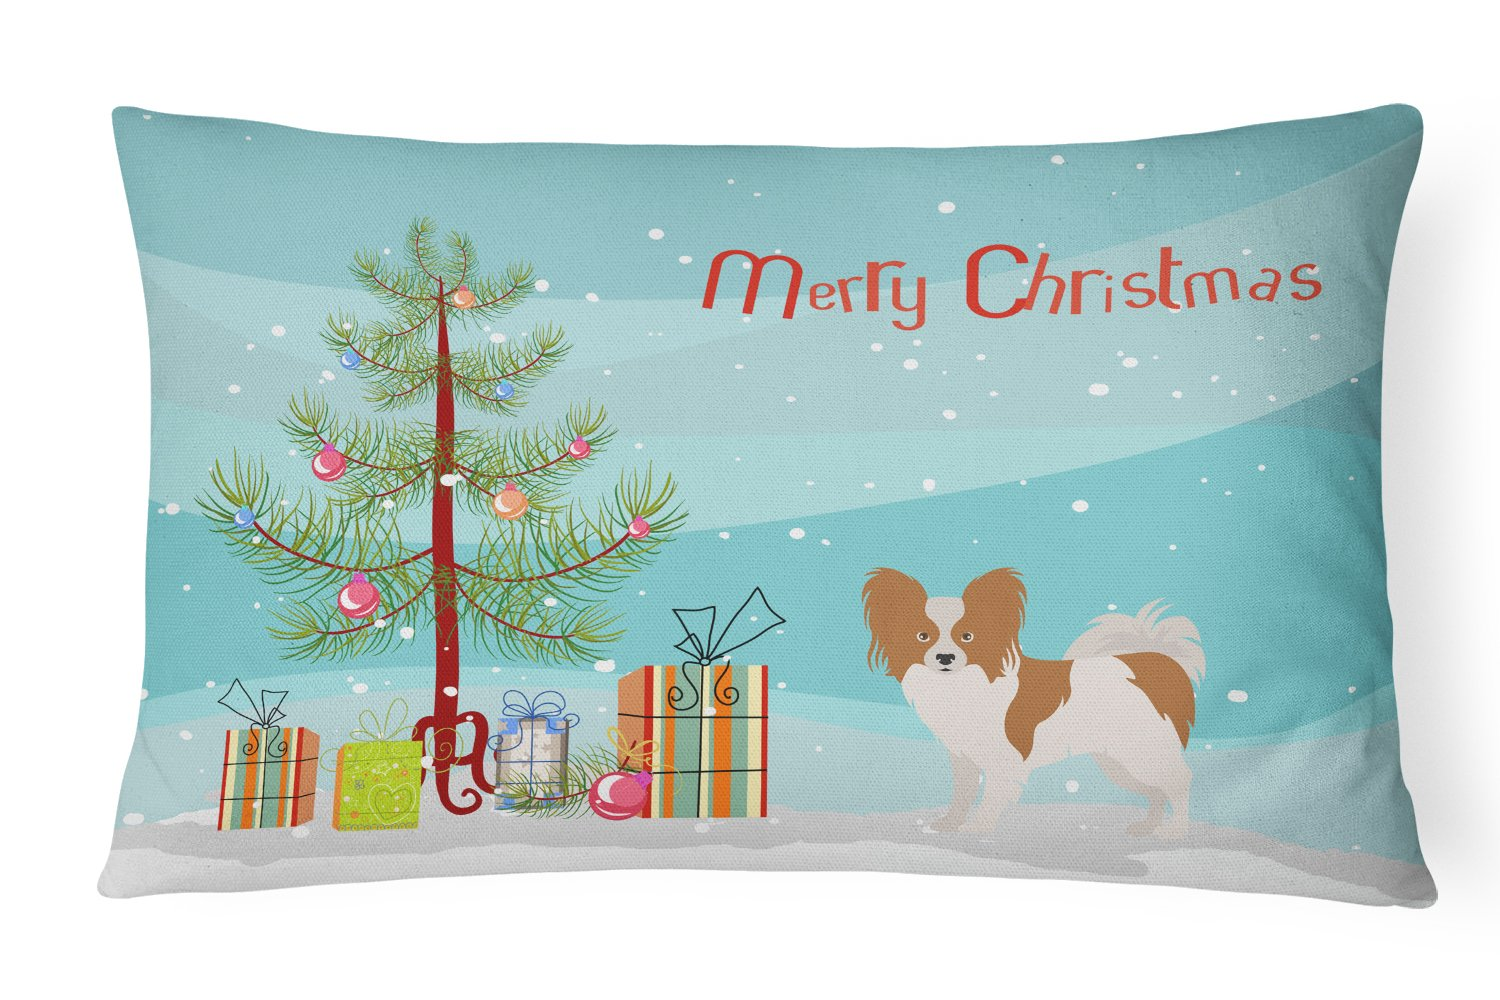 Papillon Christmas Tree Canvas Fabric Decorative Pillow CK3476PW1216 by Caroline's Treasures